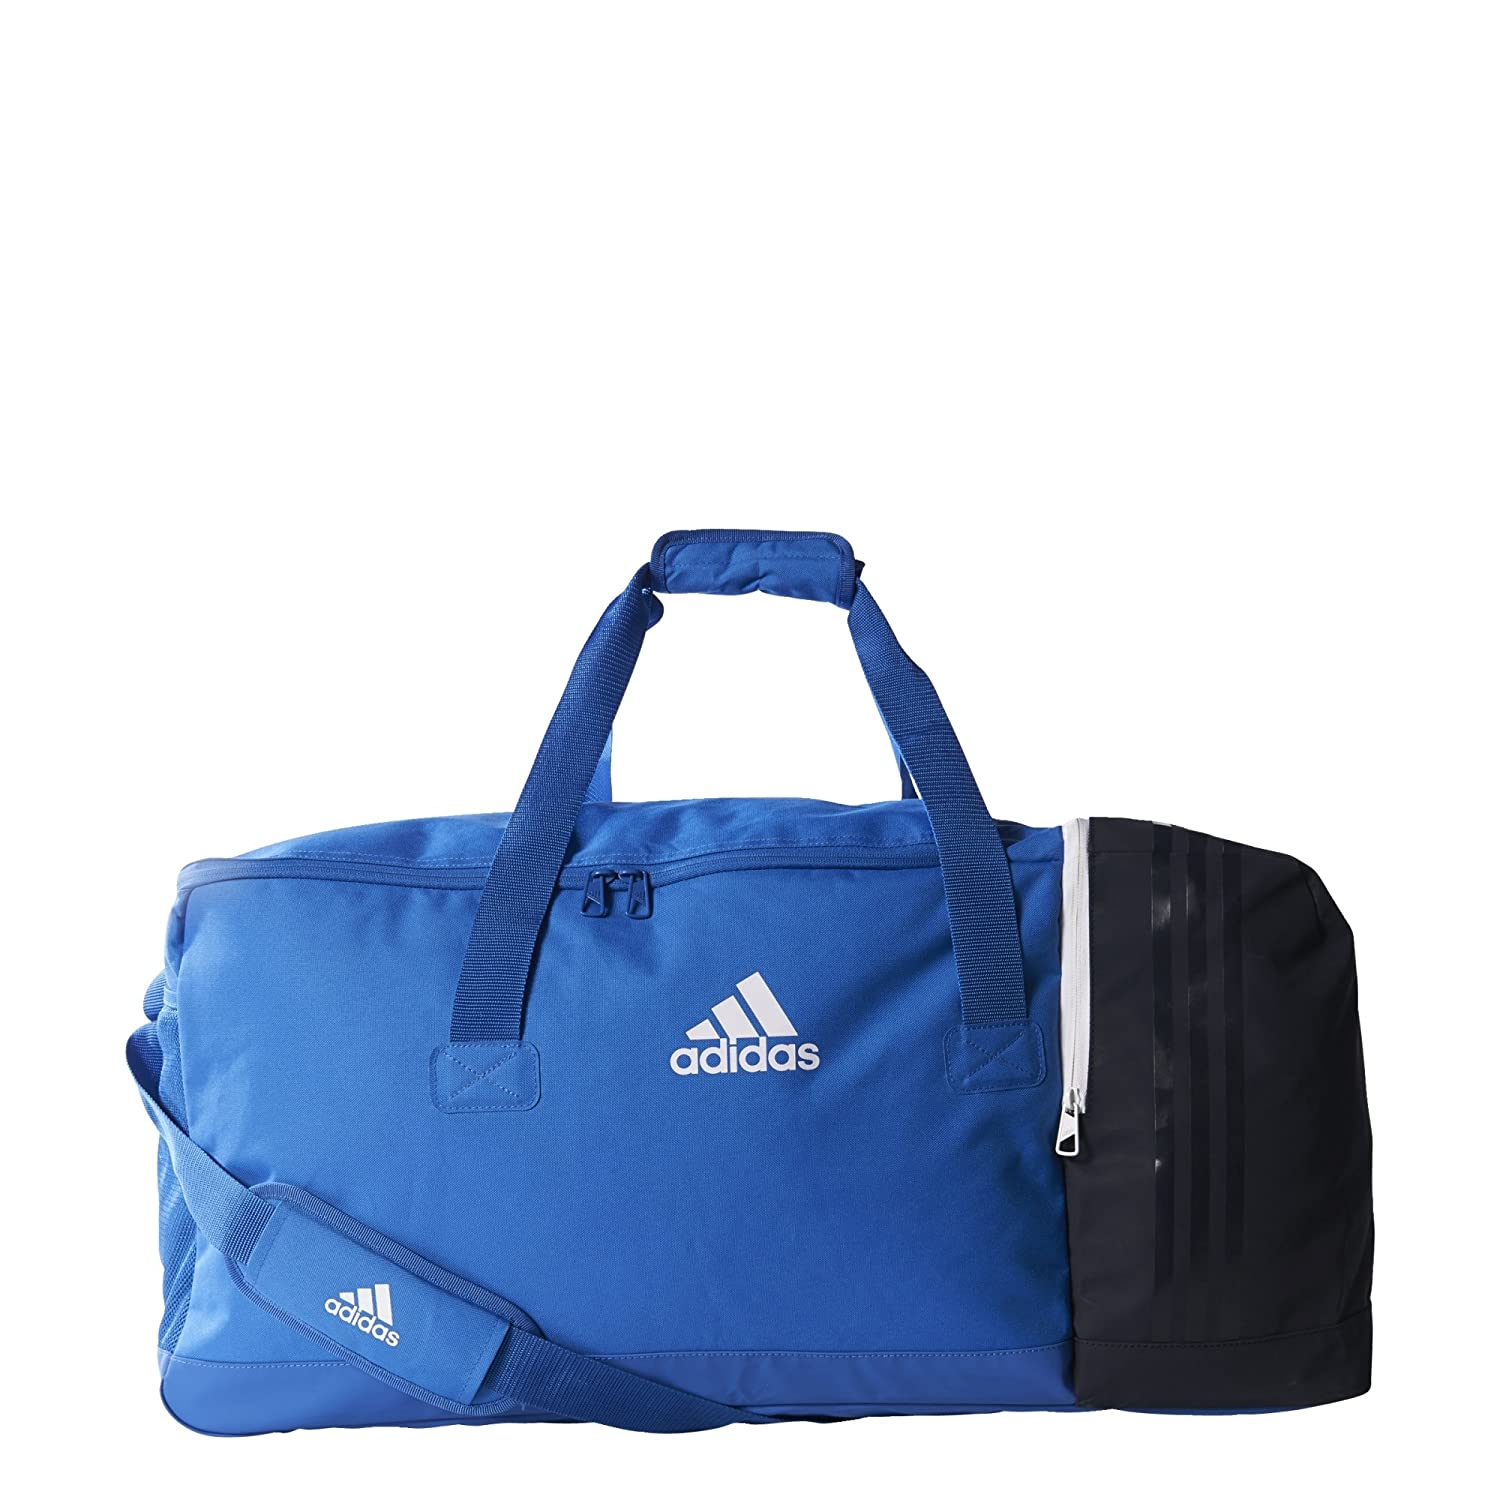 adidas Tiro Trainings Bag Large/27 cm x 61 cm x 28 cm BS4743